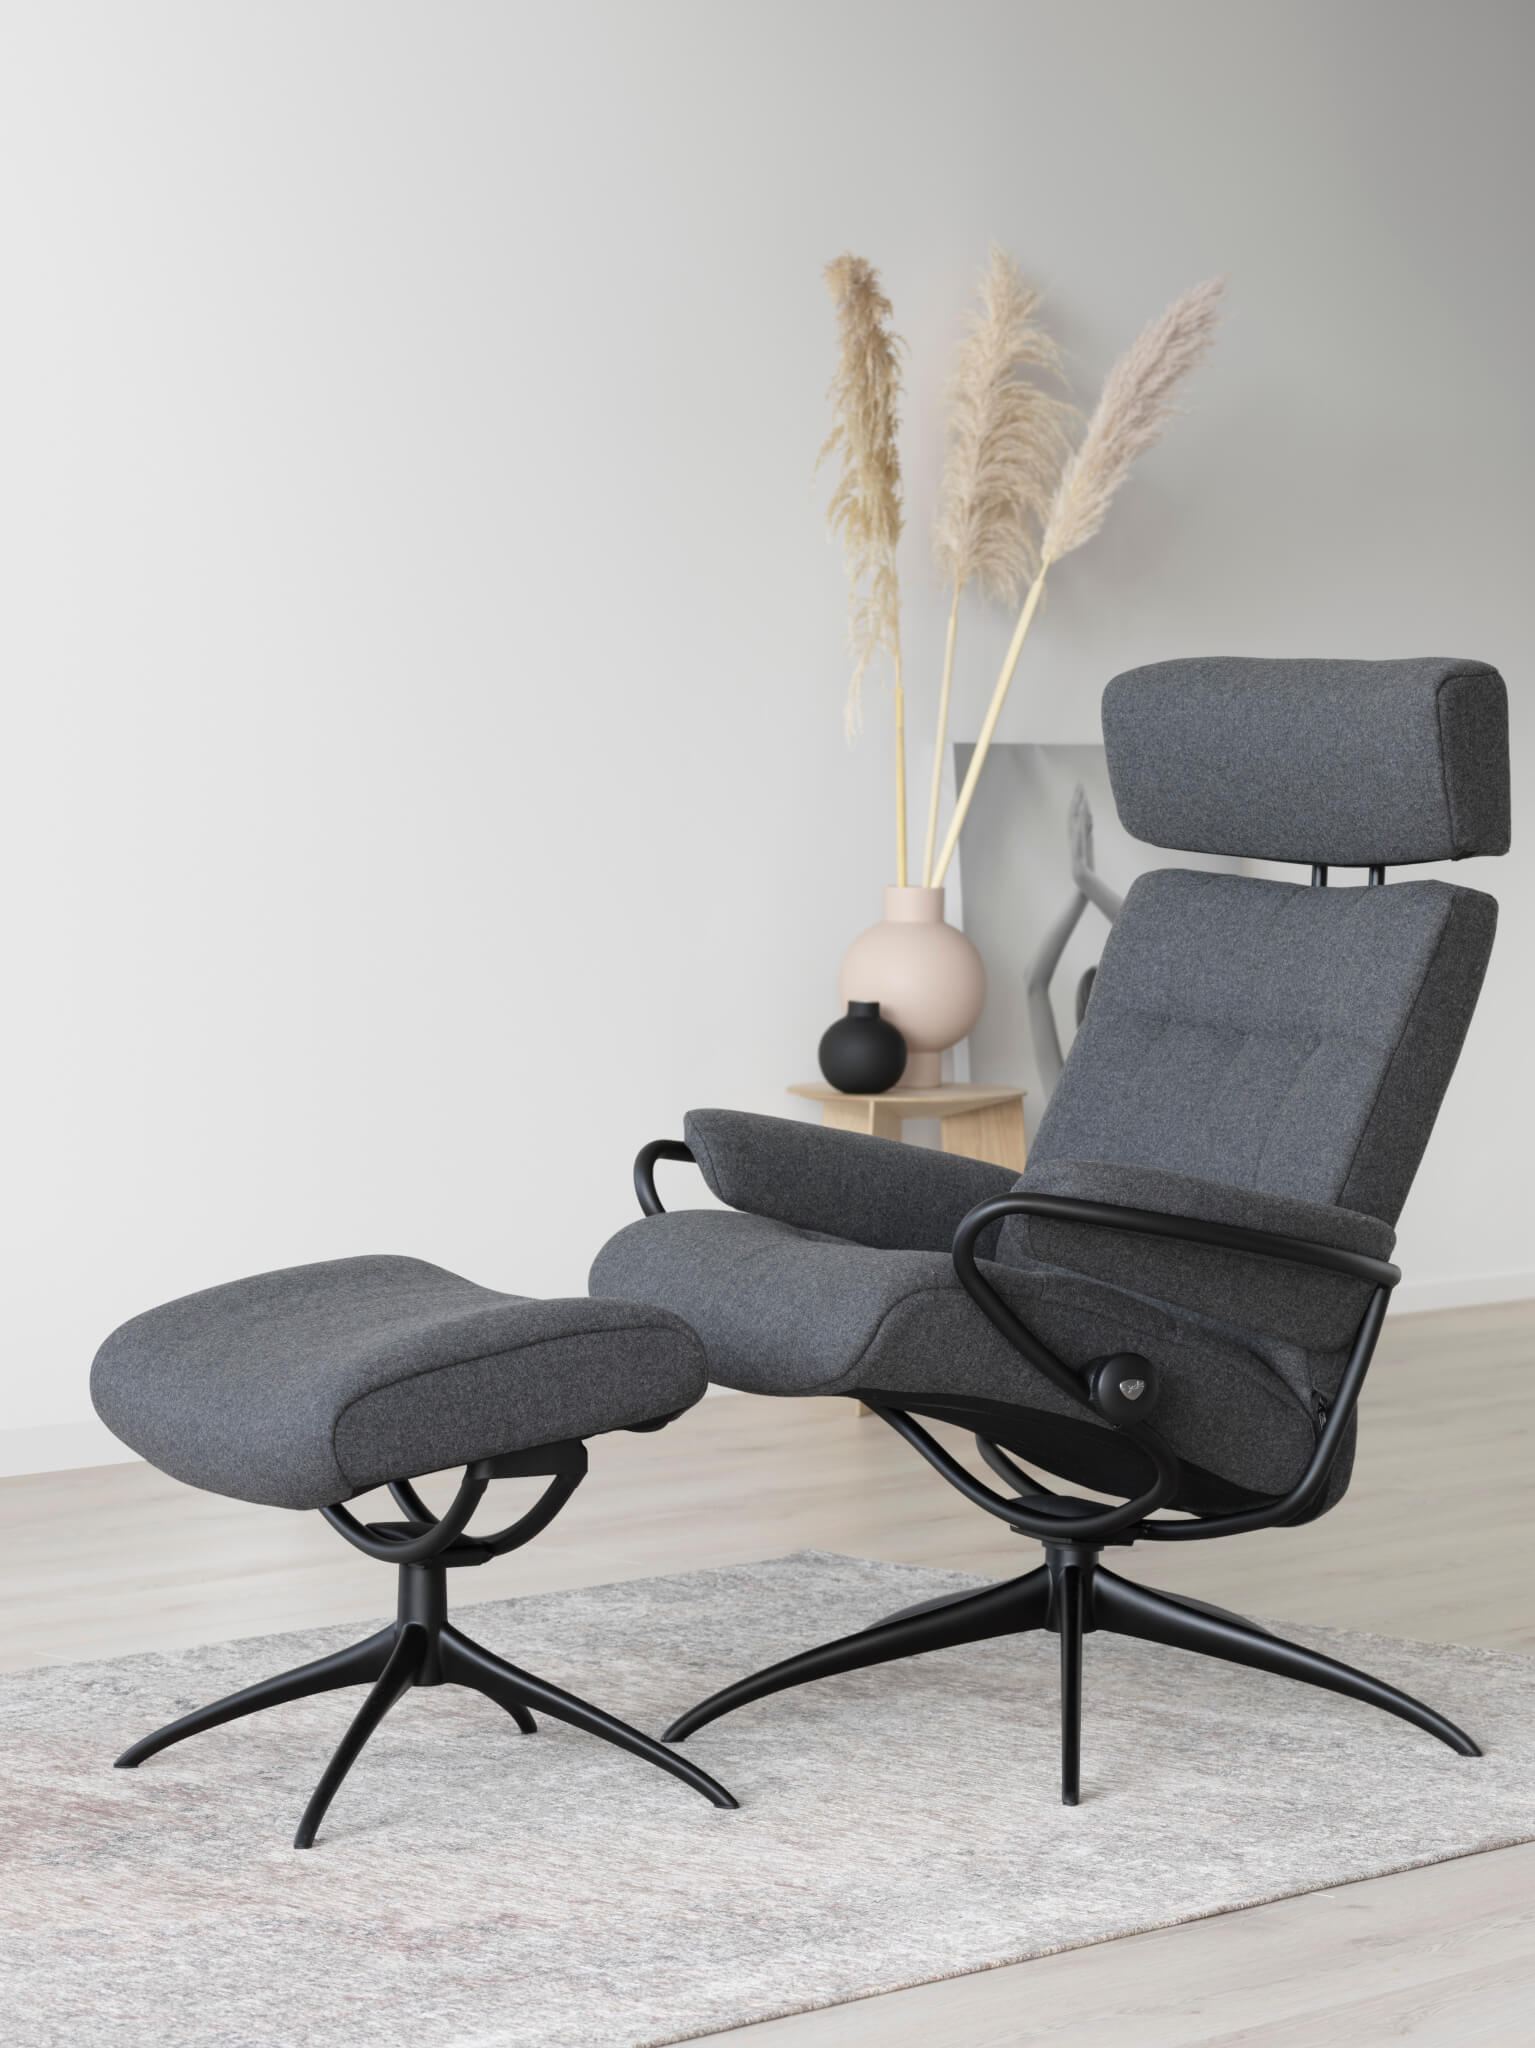 Stressless_London_Low_with headrest_Calido Dark Grey_Black_0045